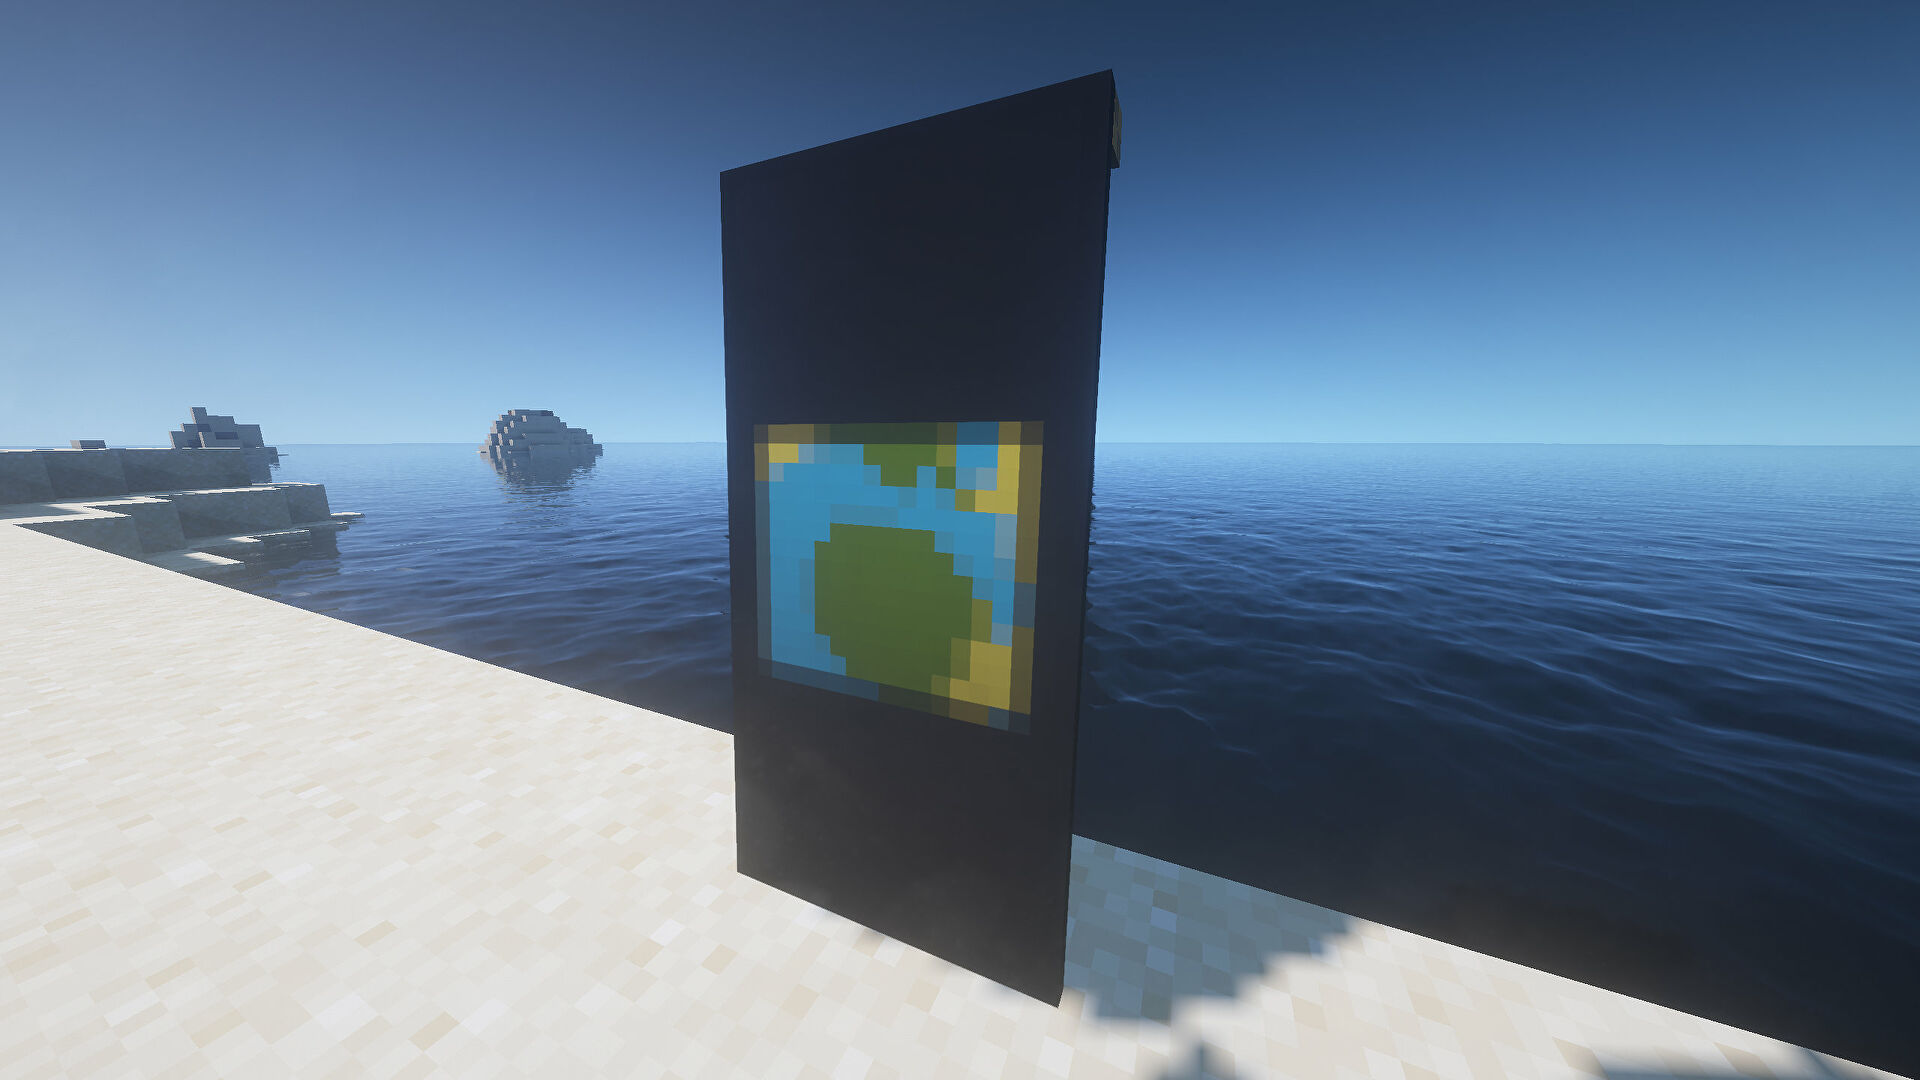 A Nether portal Banner in Minecraft, placed in the ground by the coast.